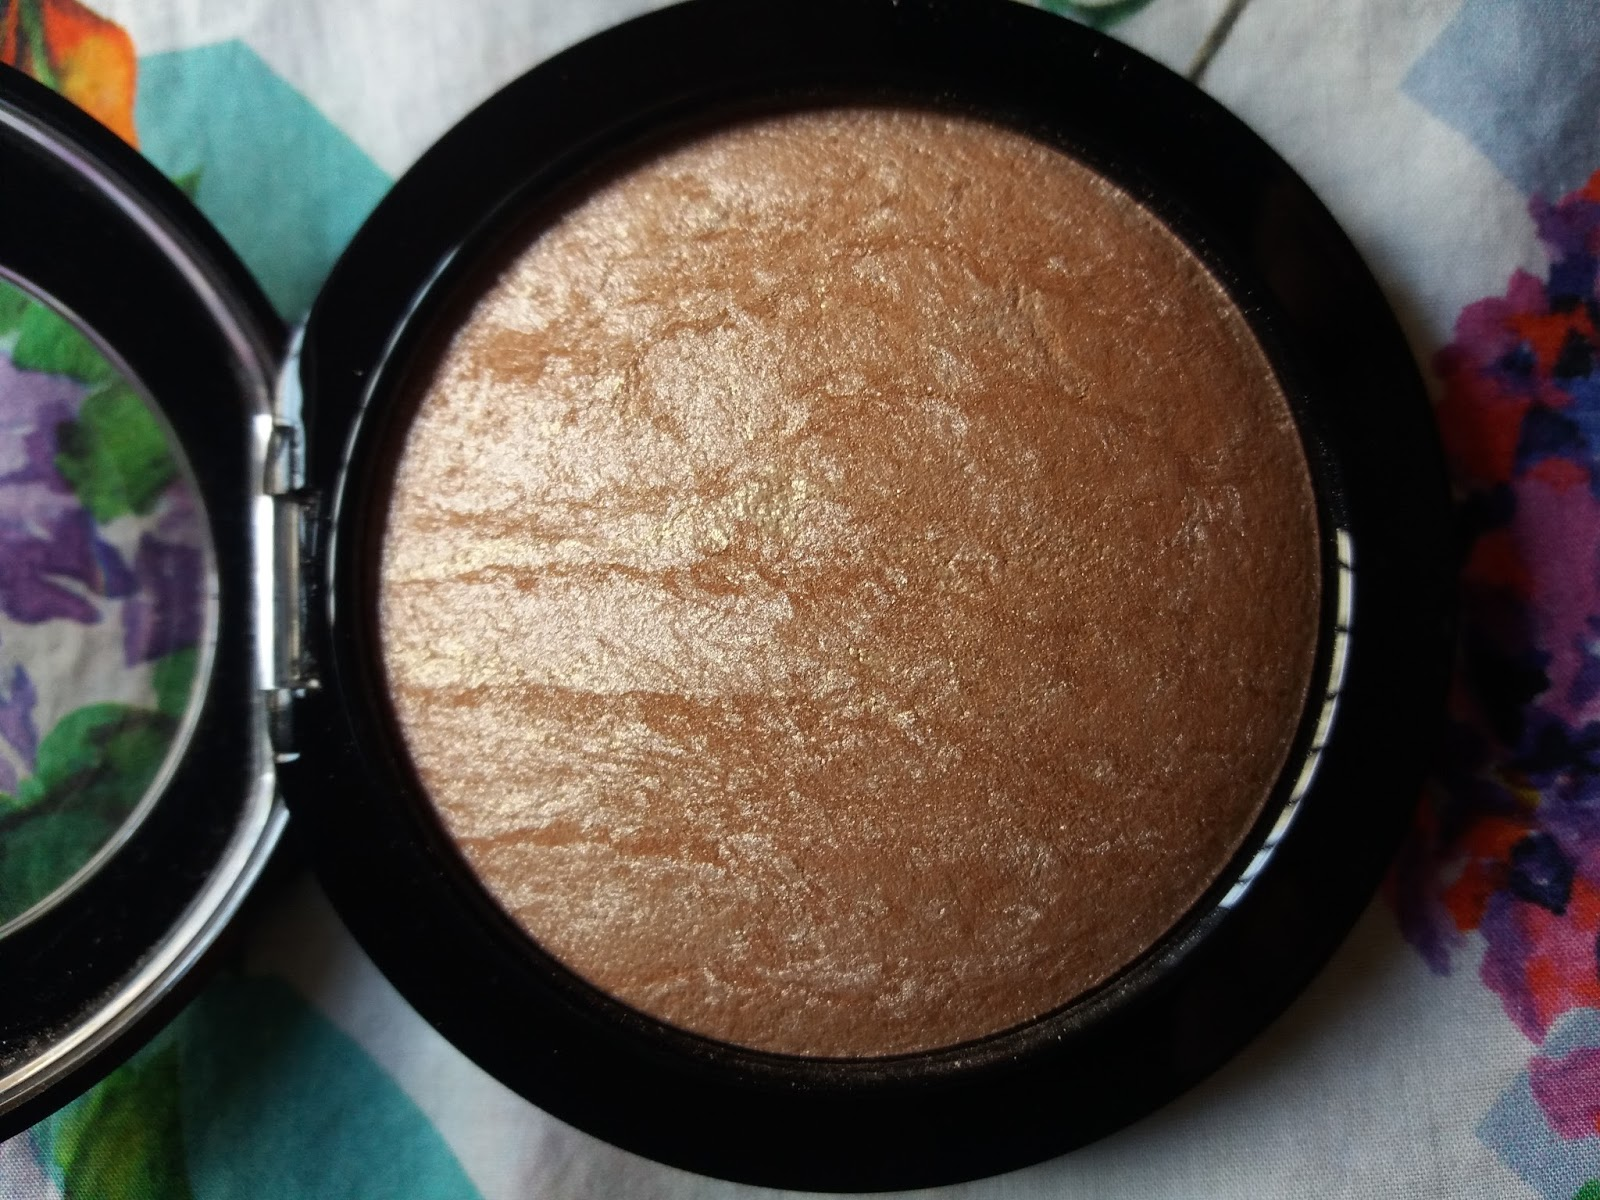 MAC Soft and Gentle Mineralize Skinfinish Review